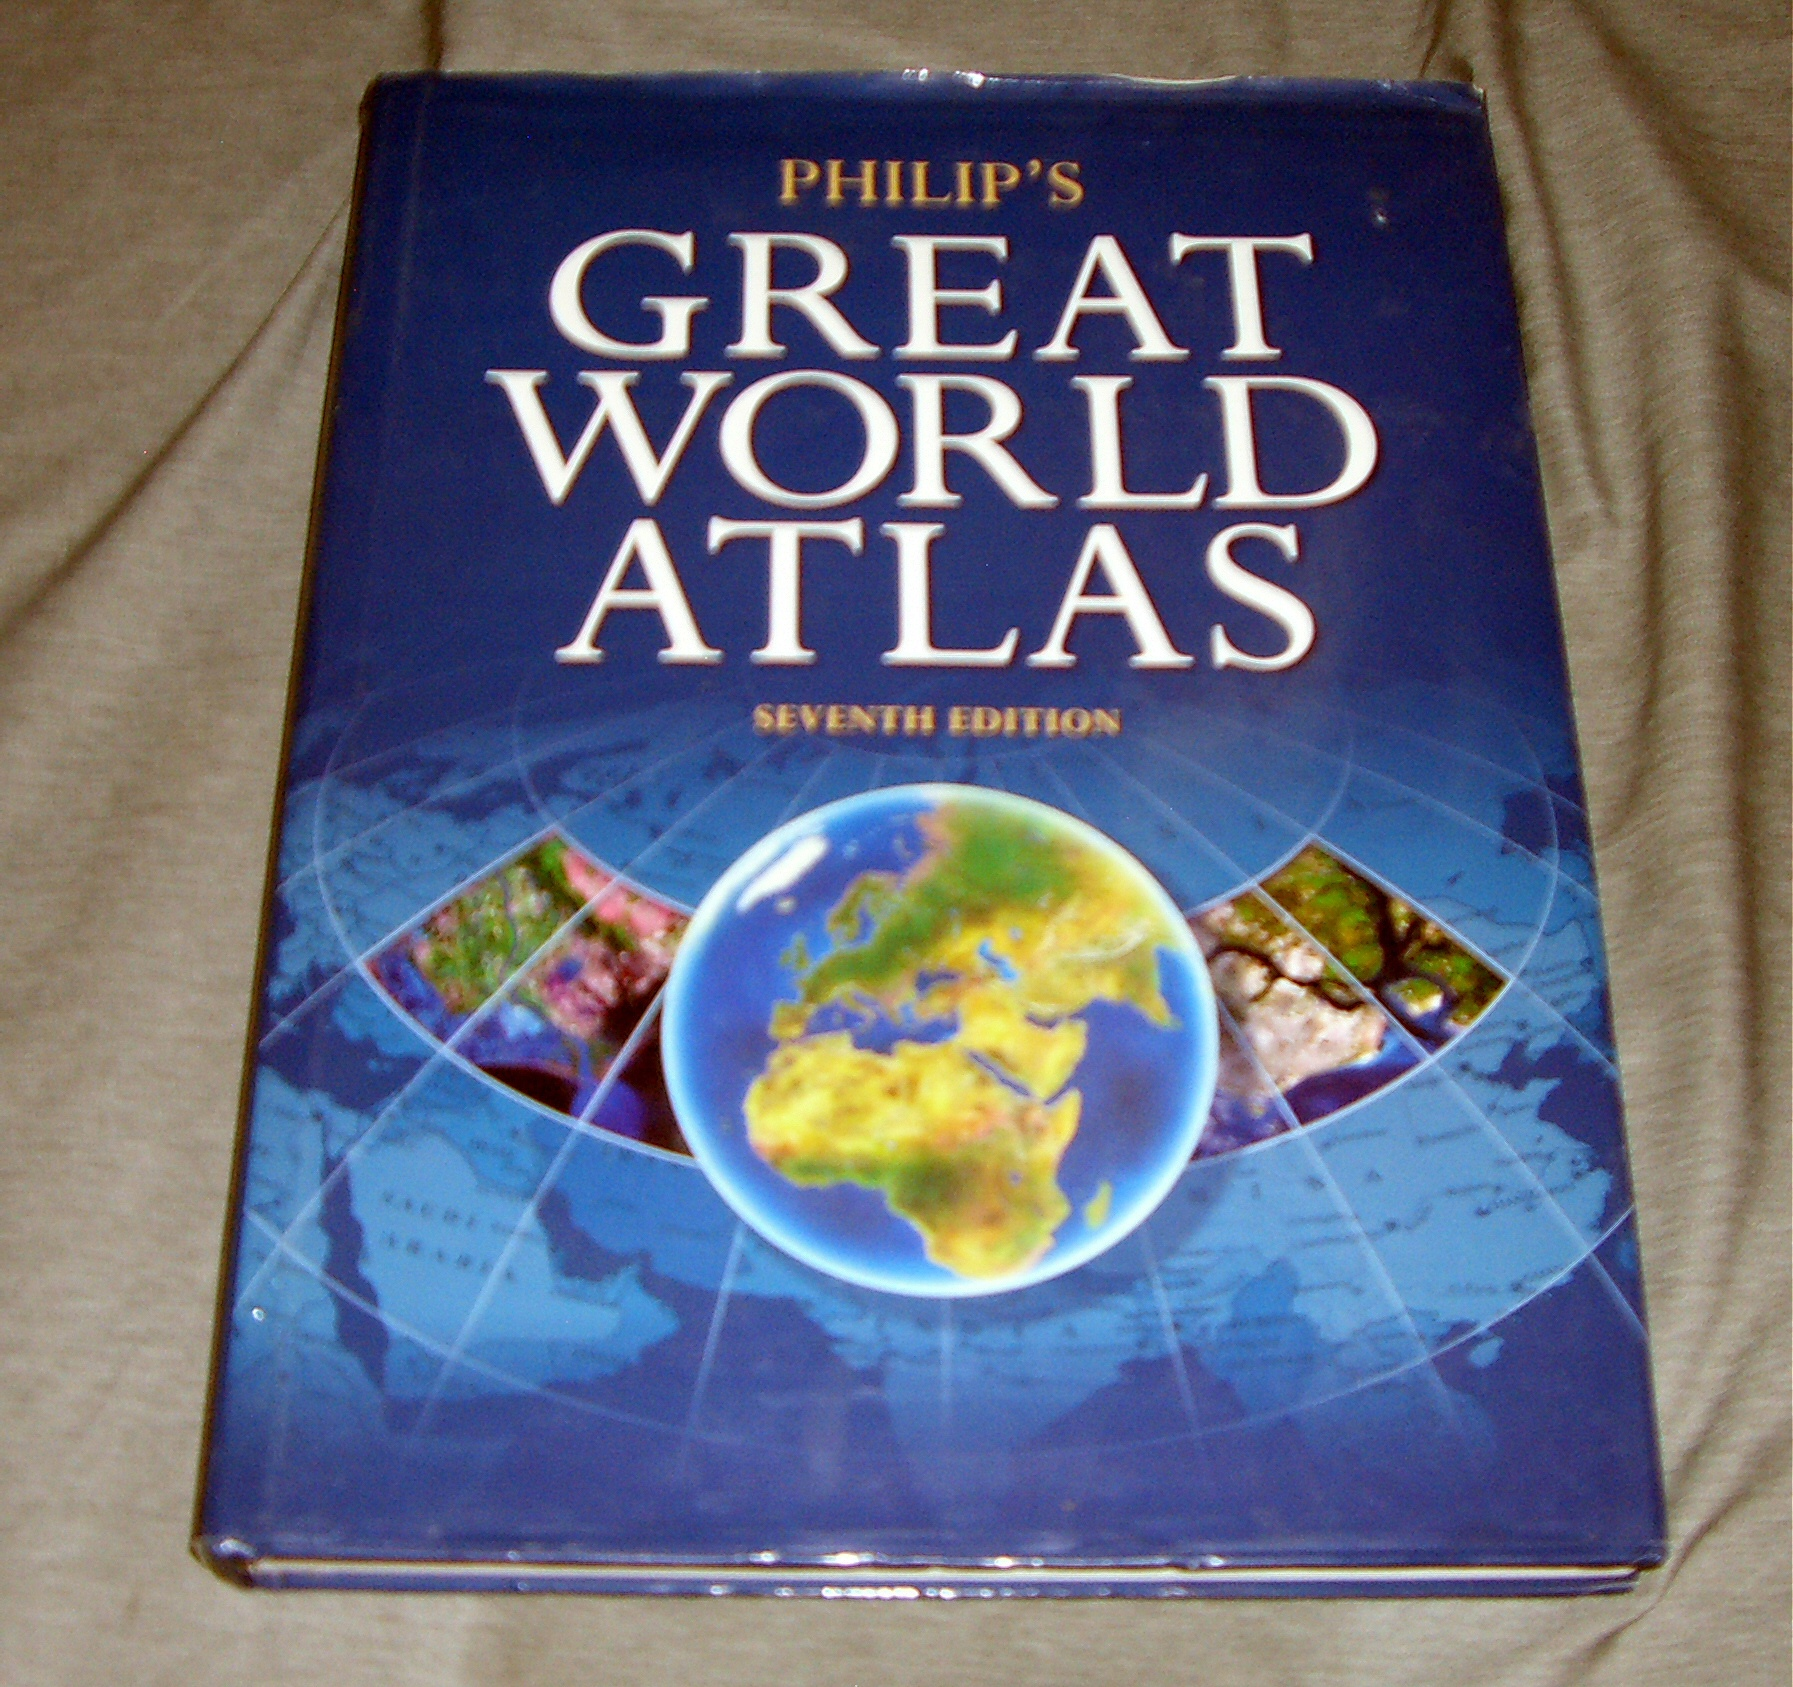 PHILIP'S GREAT WORLD ATLAS, Group, Octopus Publishing